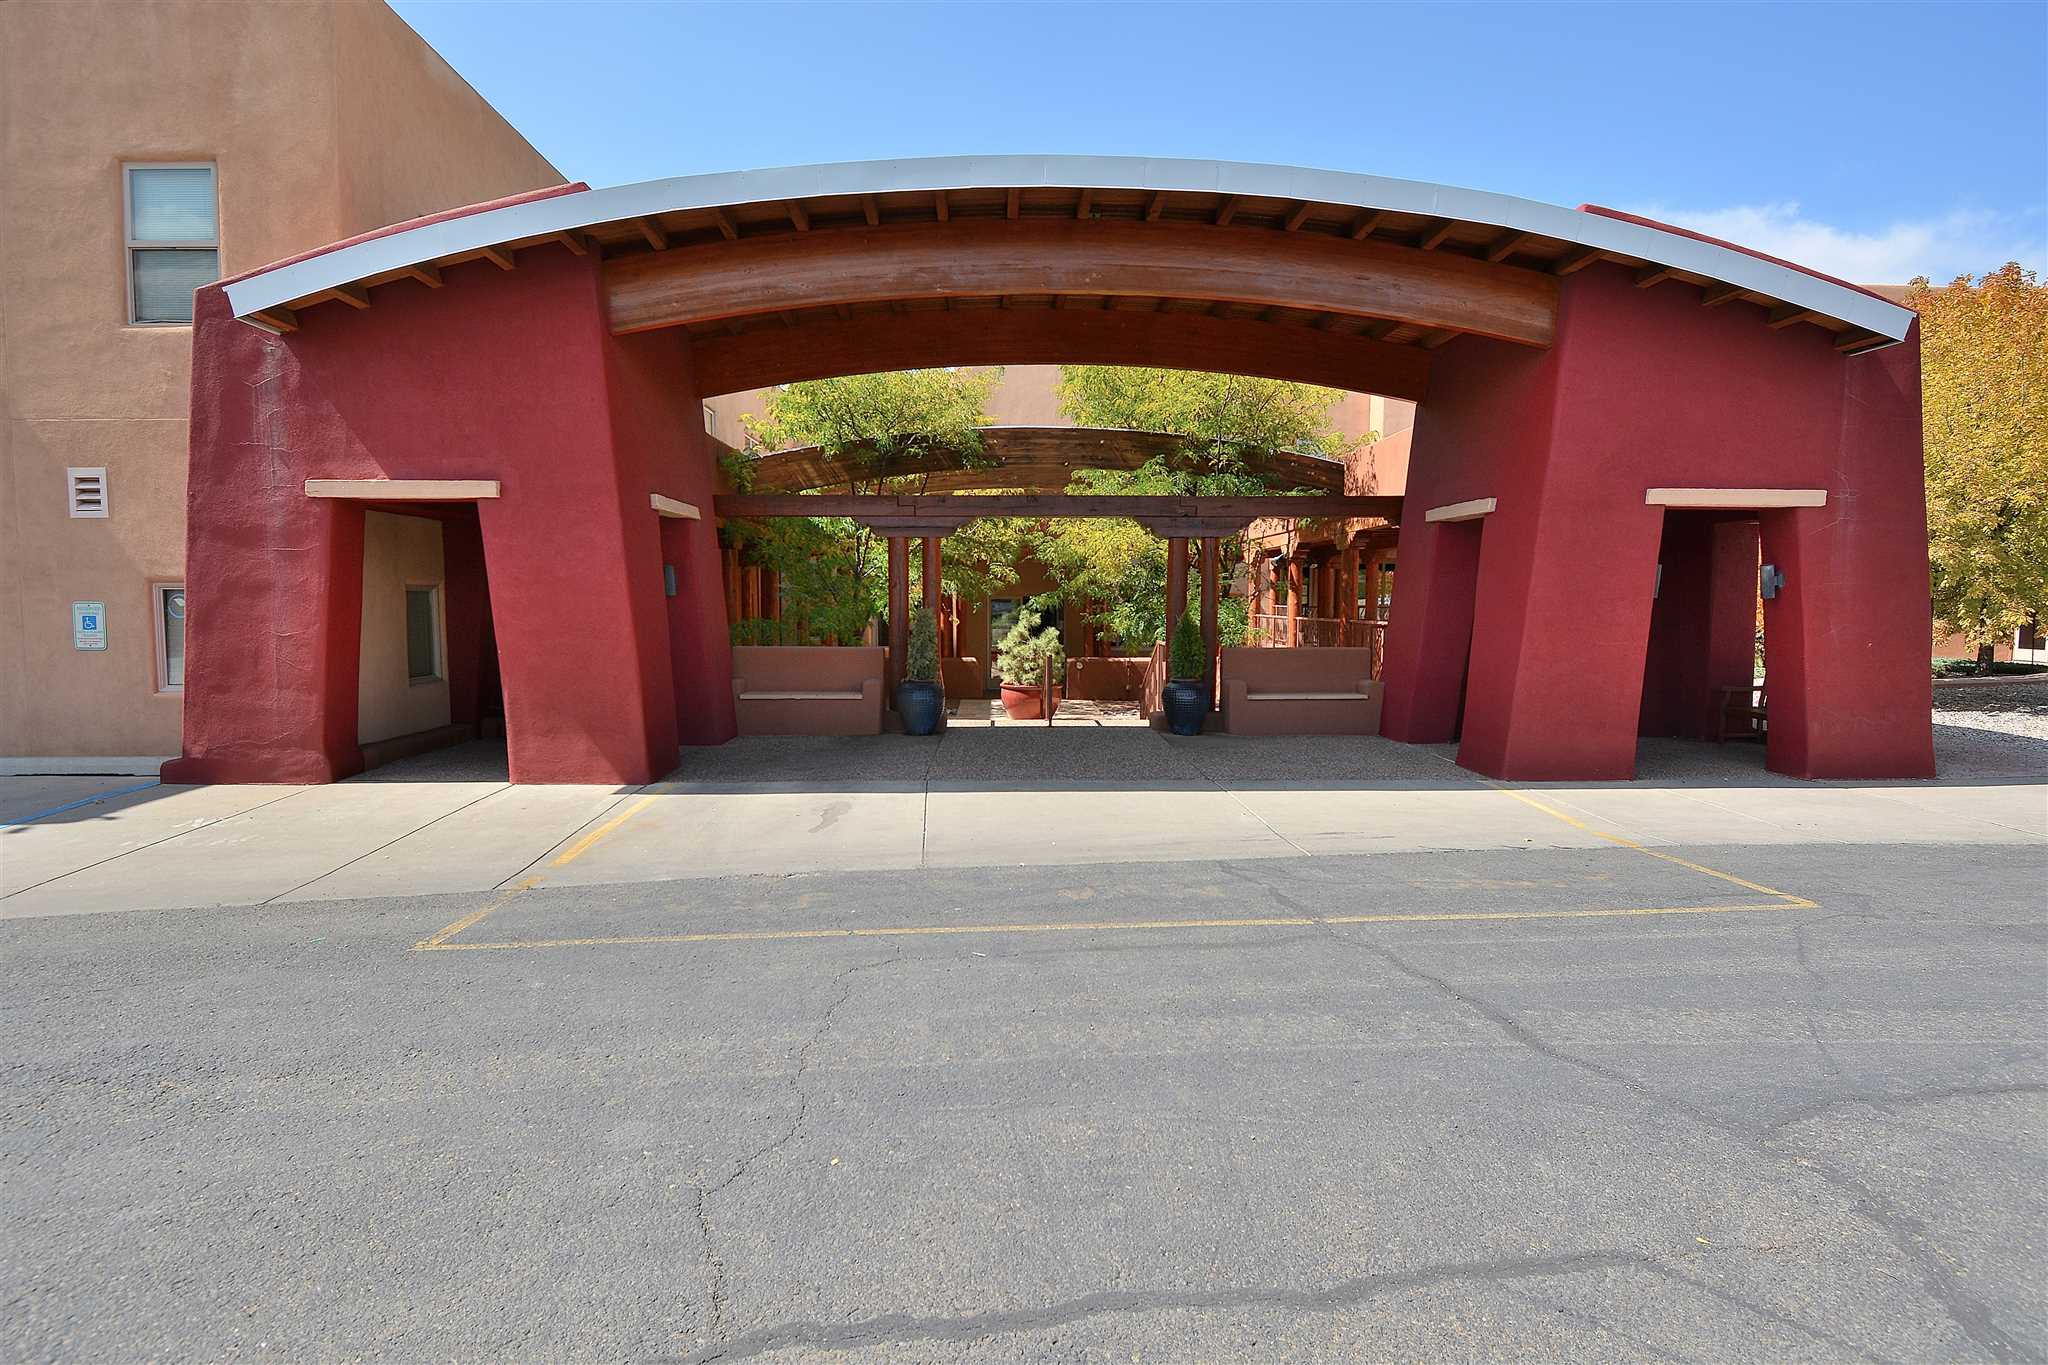 500 Rodeo, Santa Fe, New Mexico 87505, 2 Bedrooms Bedrooms, ,2 BathroomsBathrooms,Condominium,For Sale,500 Rodeo,202004016